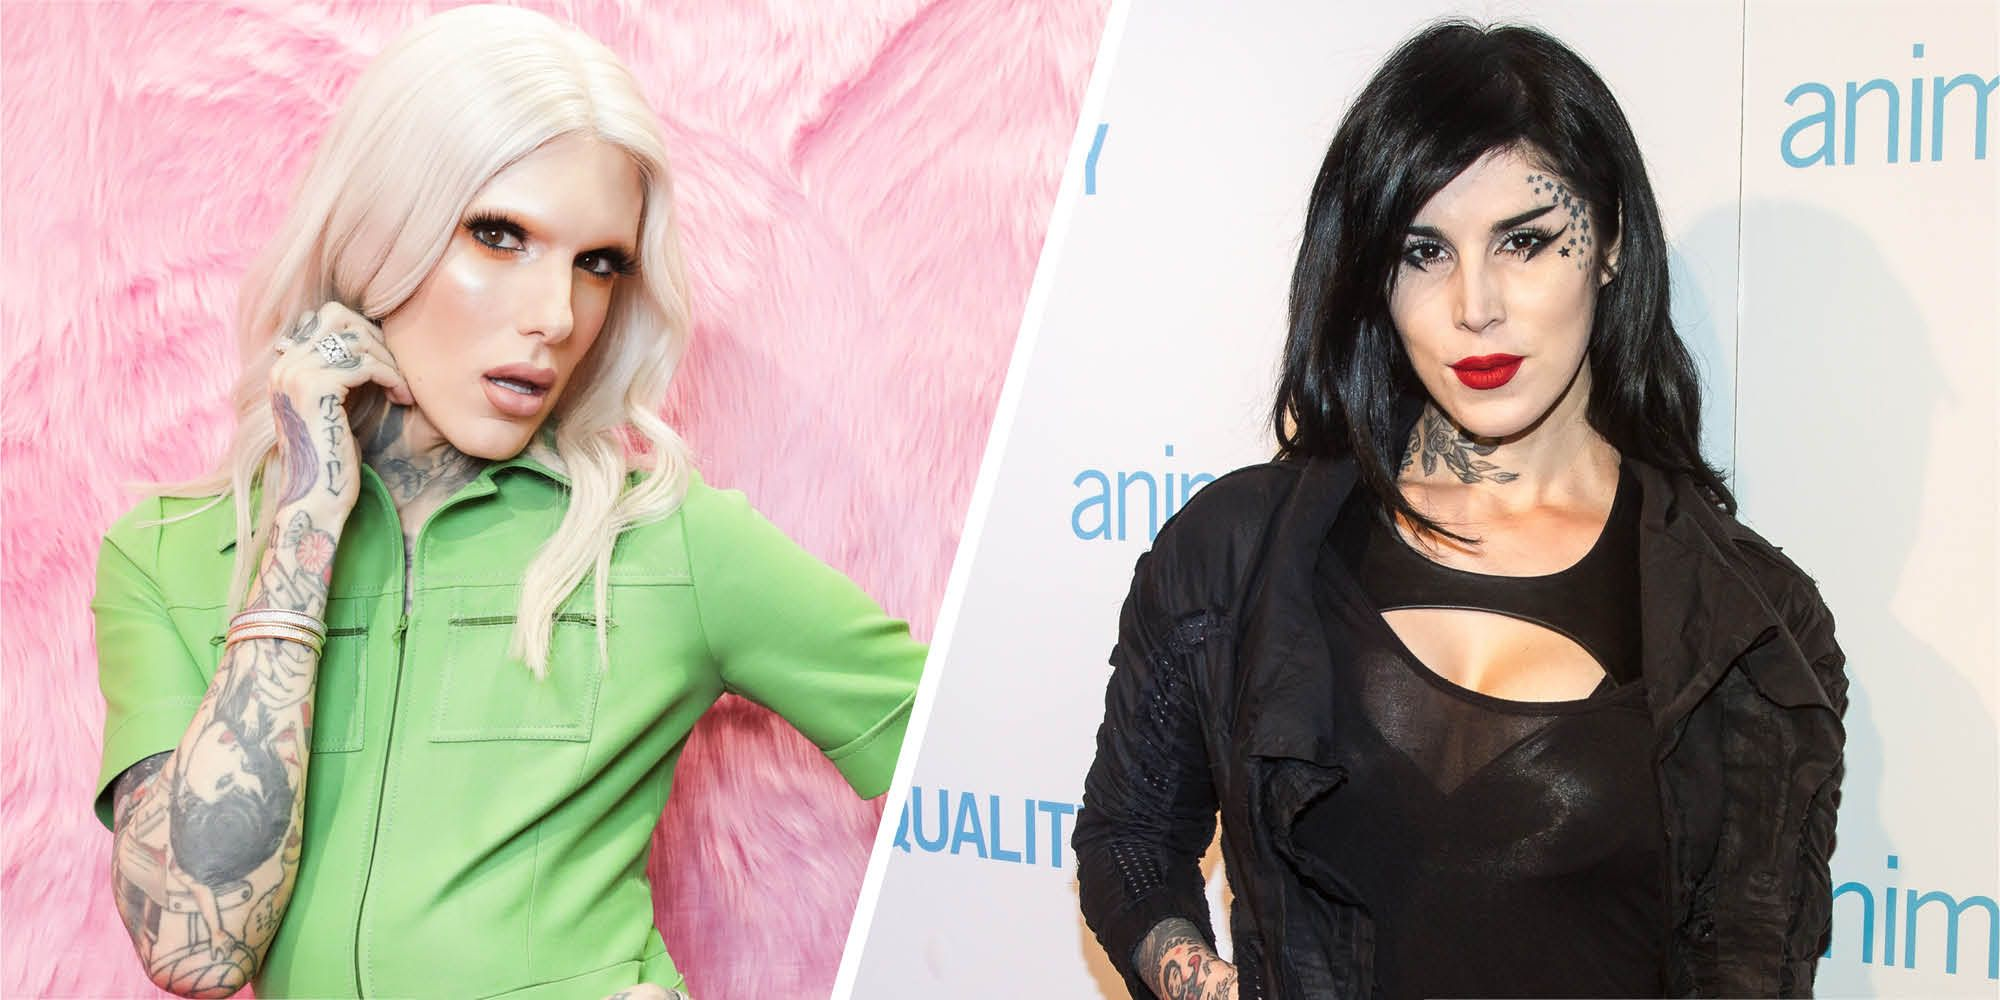 Jeffree Star just took to Twitter to drag Kat Von D again